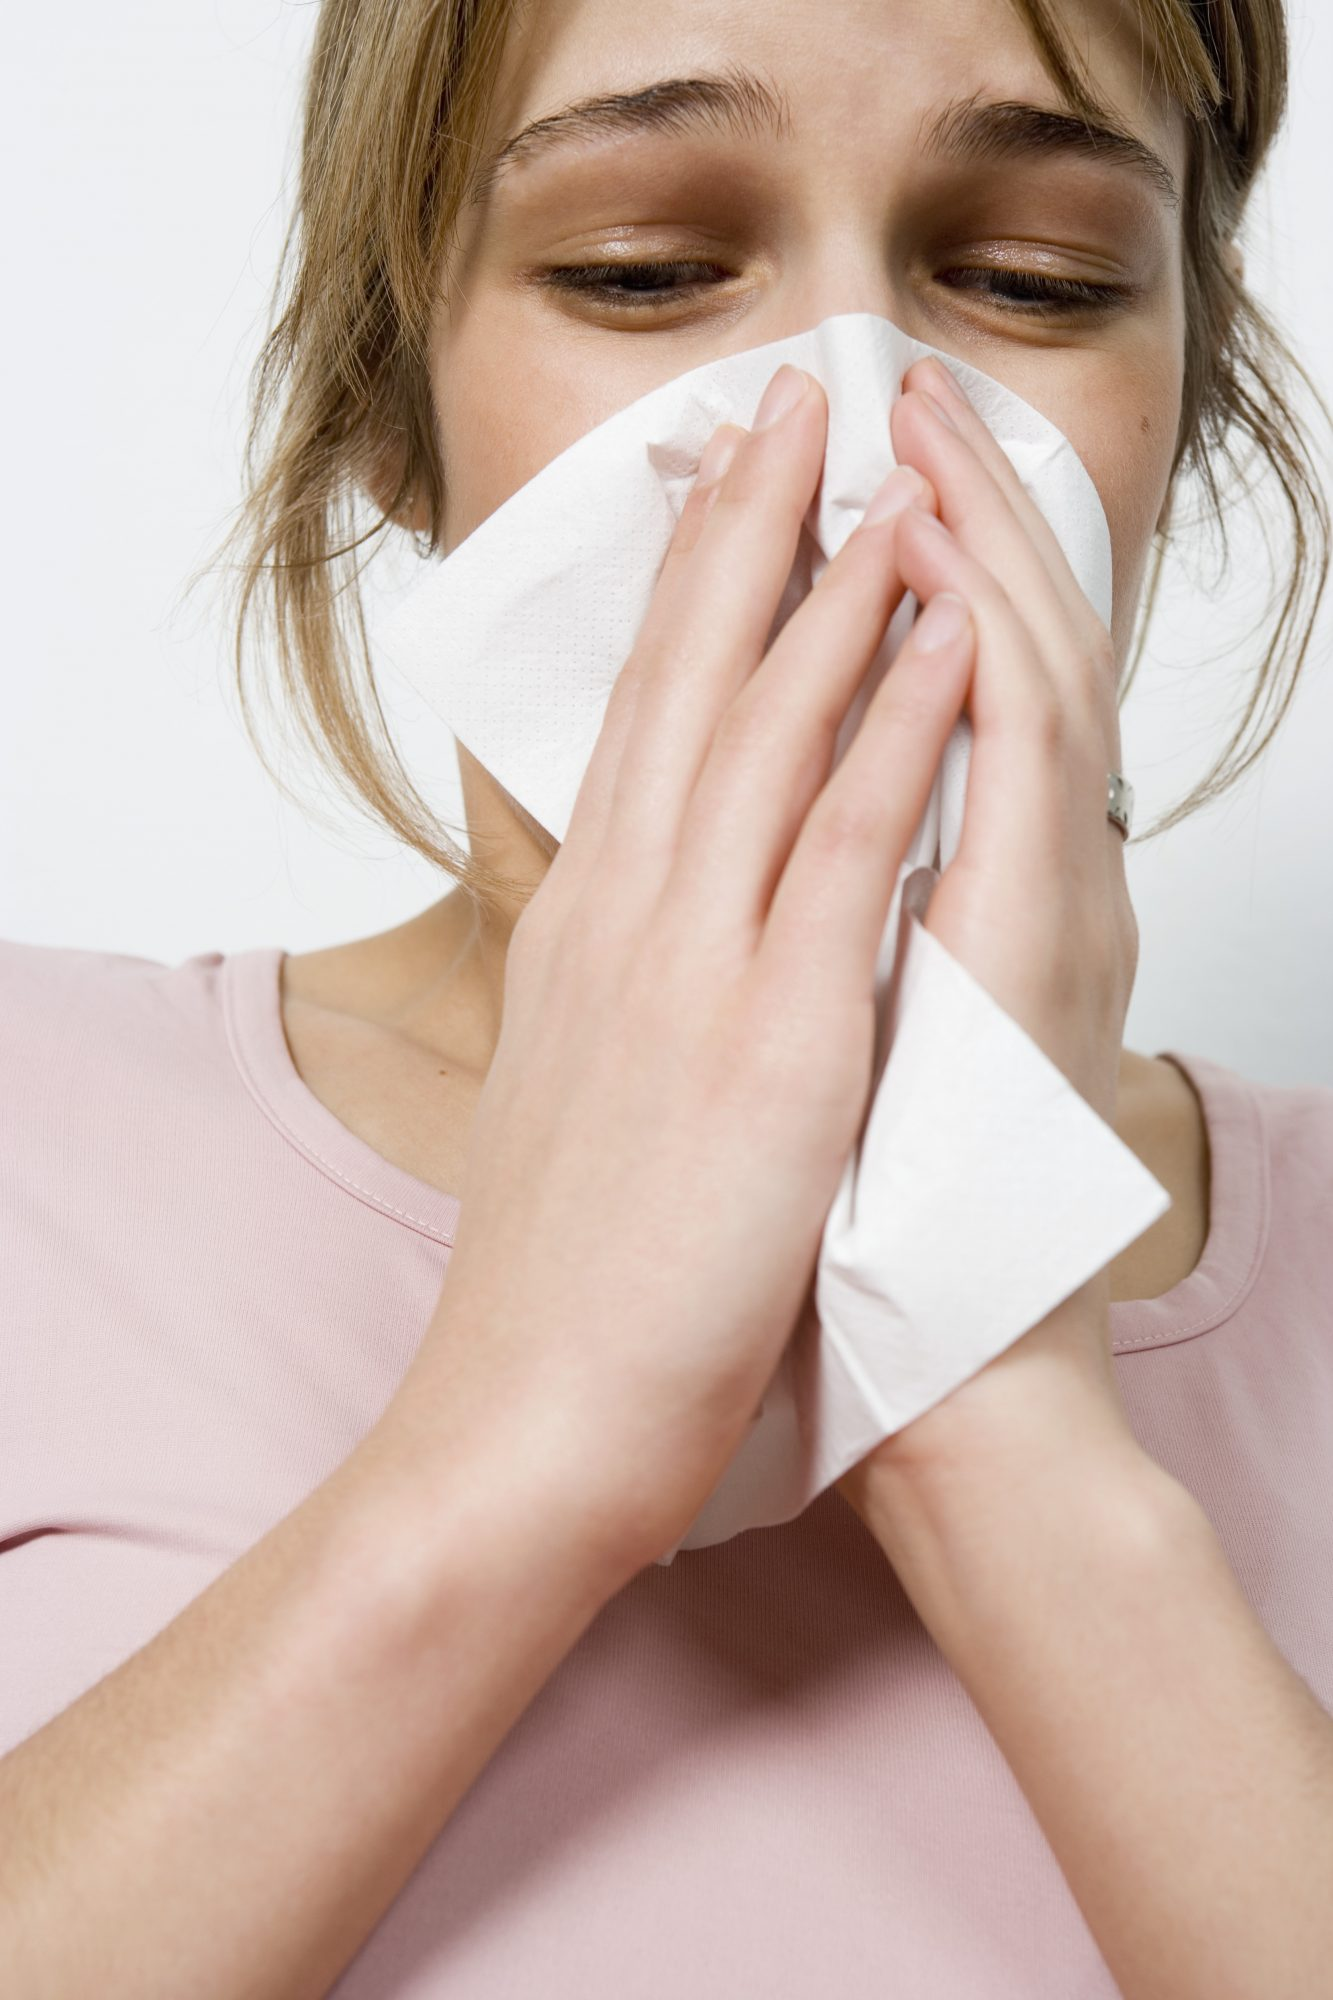 heart flu symptoms sneeze tissue booger runny nose wipe nose irritation cold virus sick woman health girl women cold season bacteria